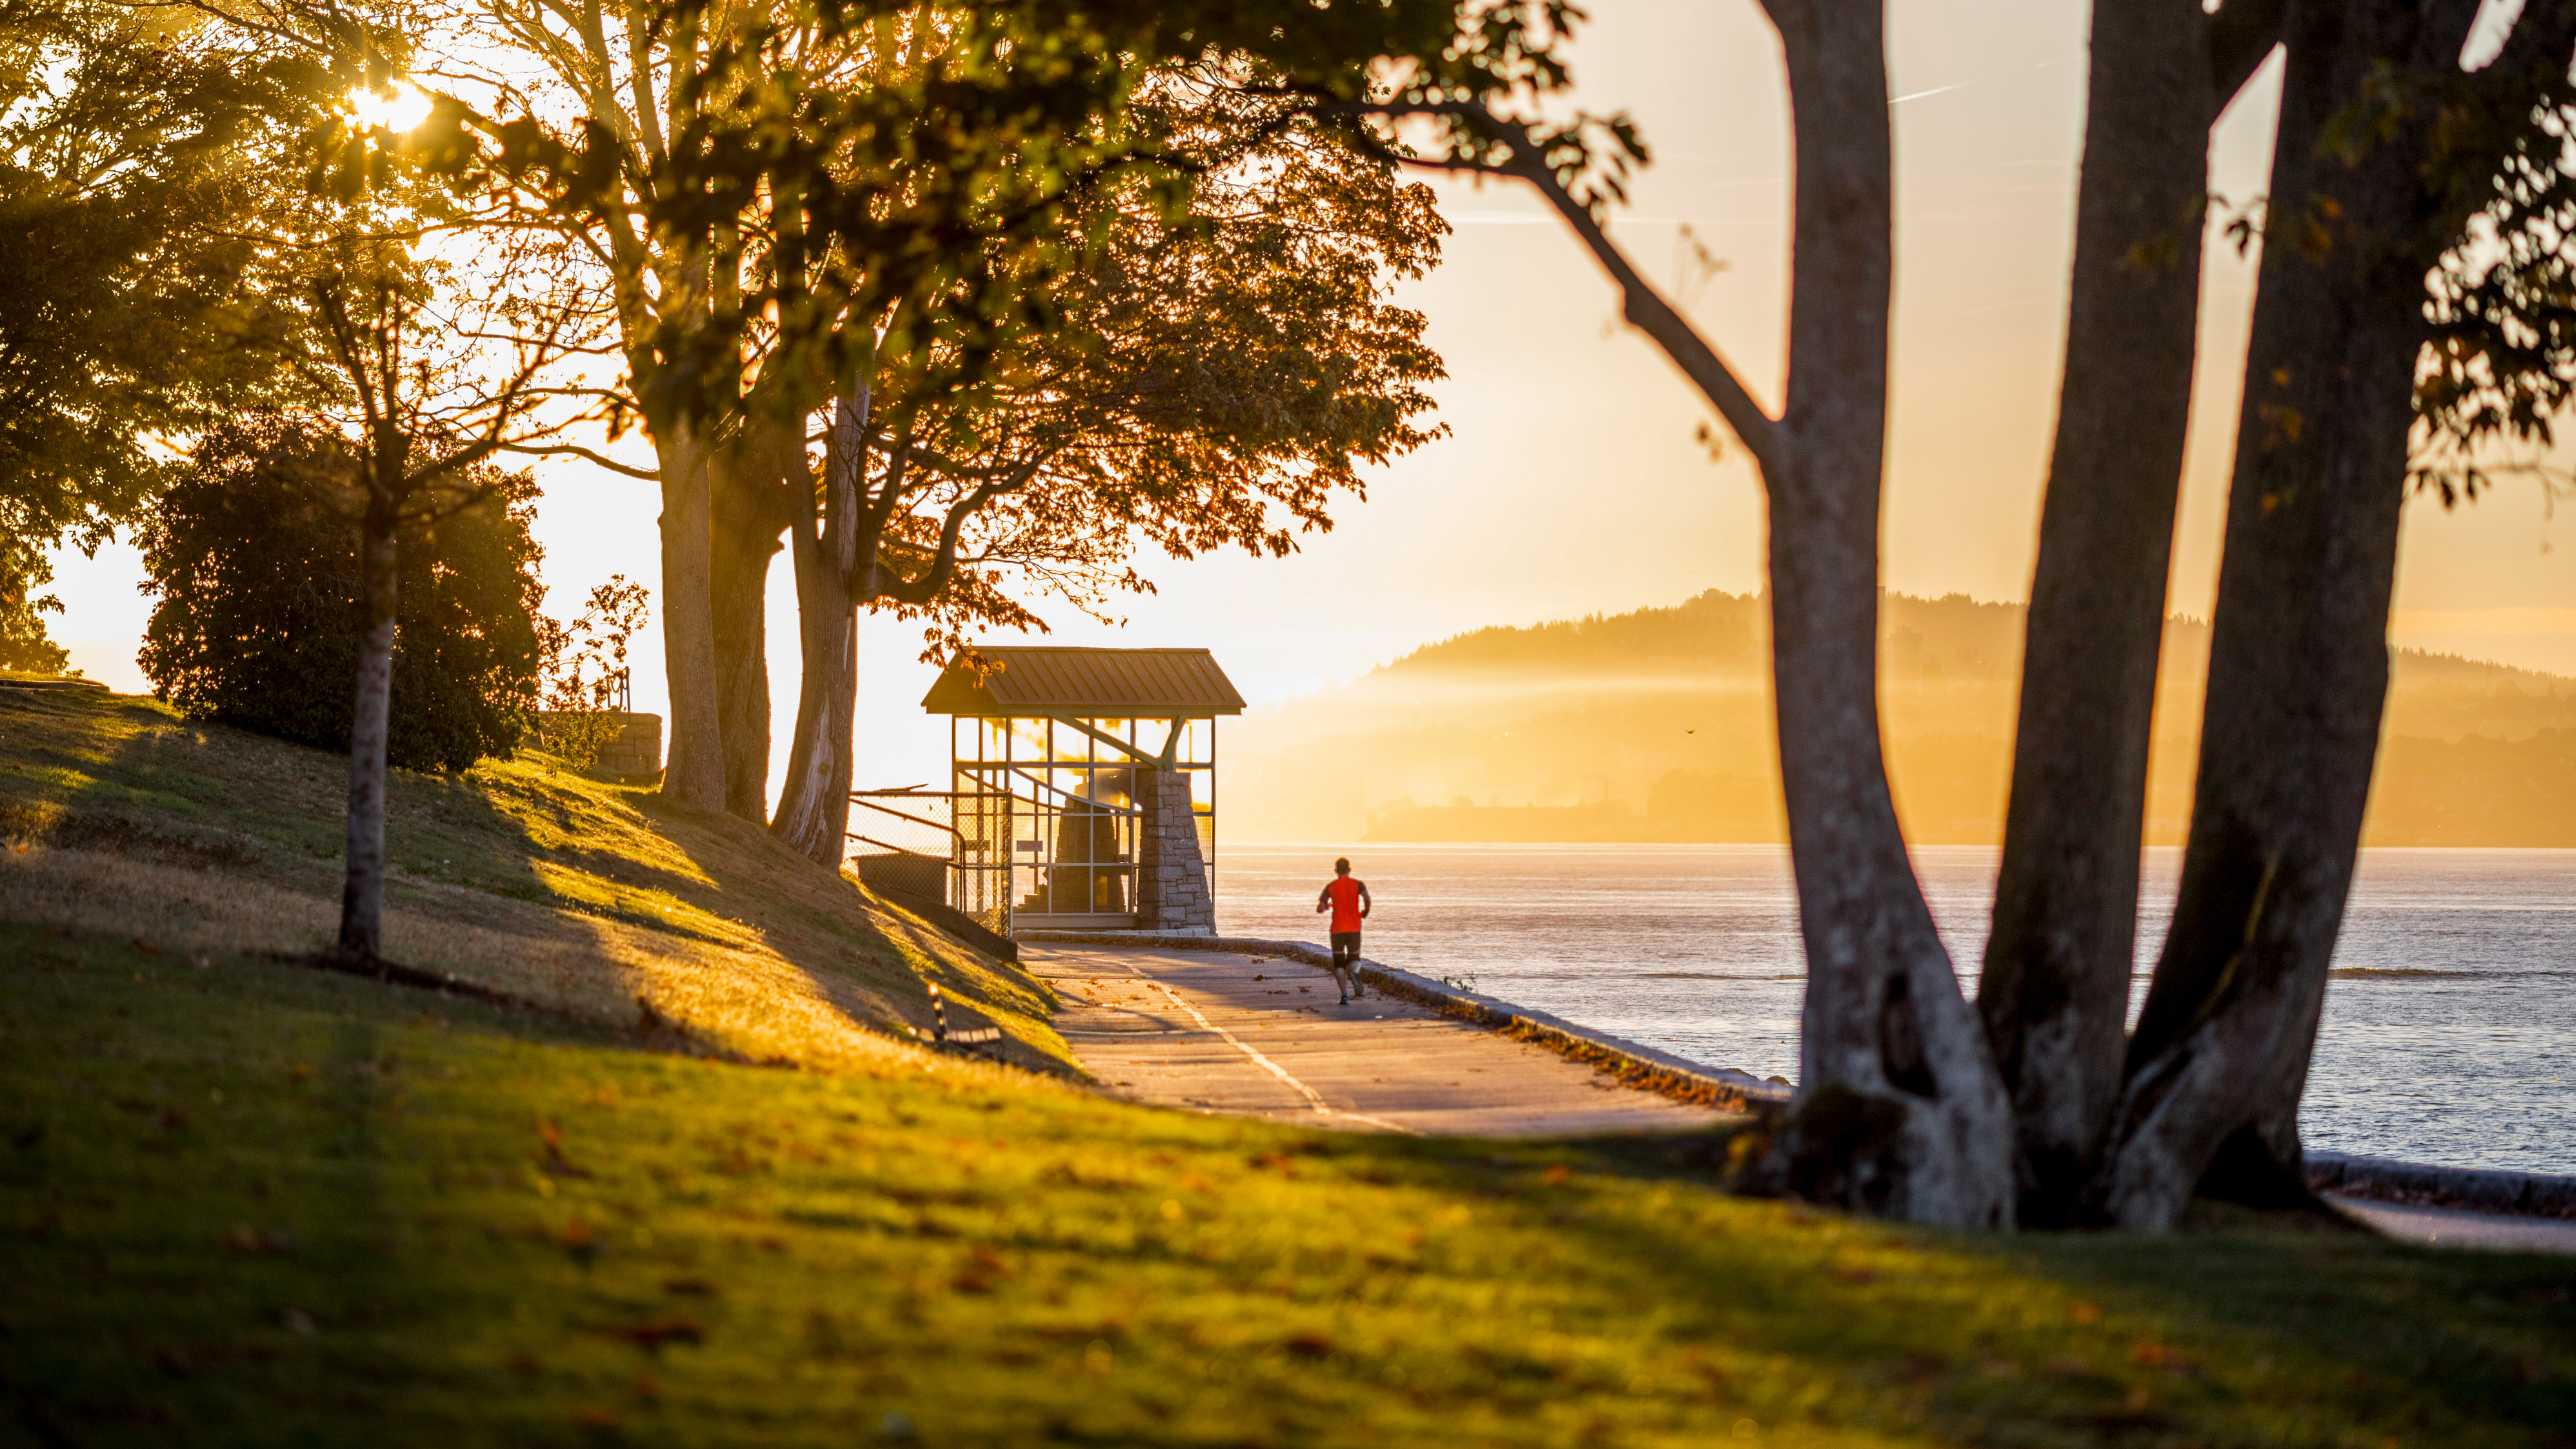 16 most relaxing places in the world | CNN Travel